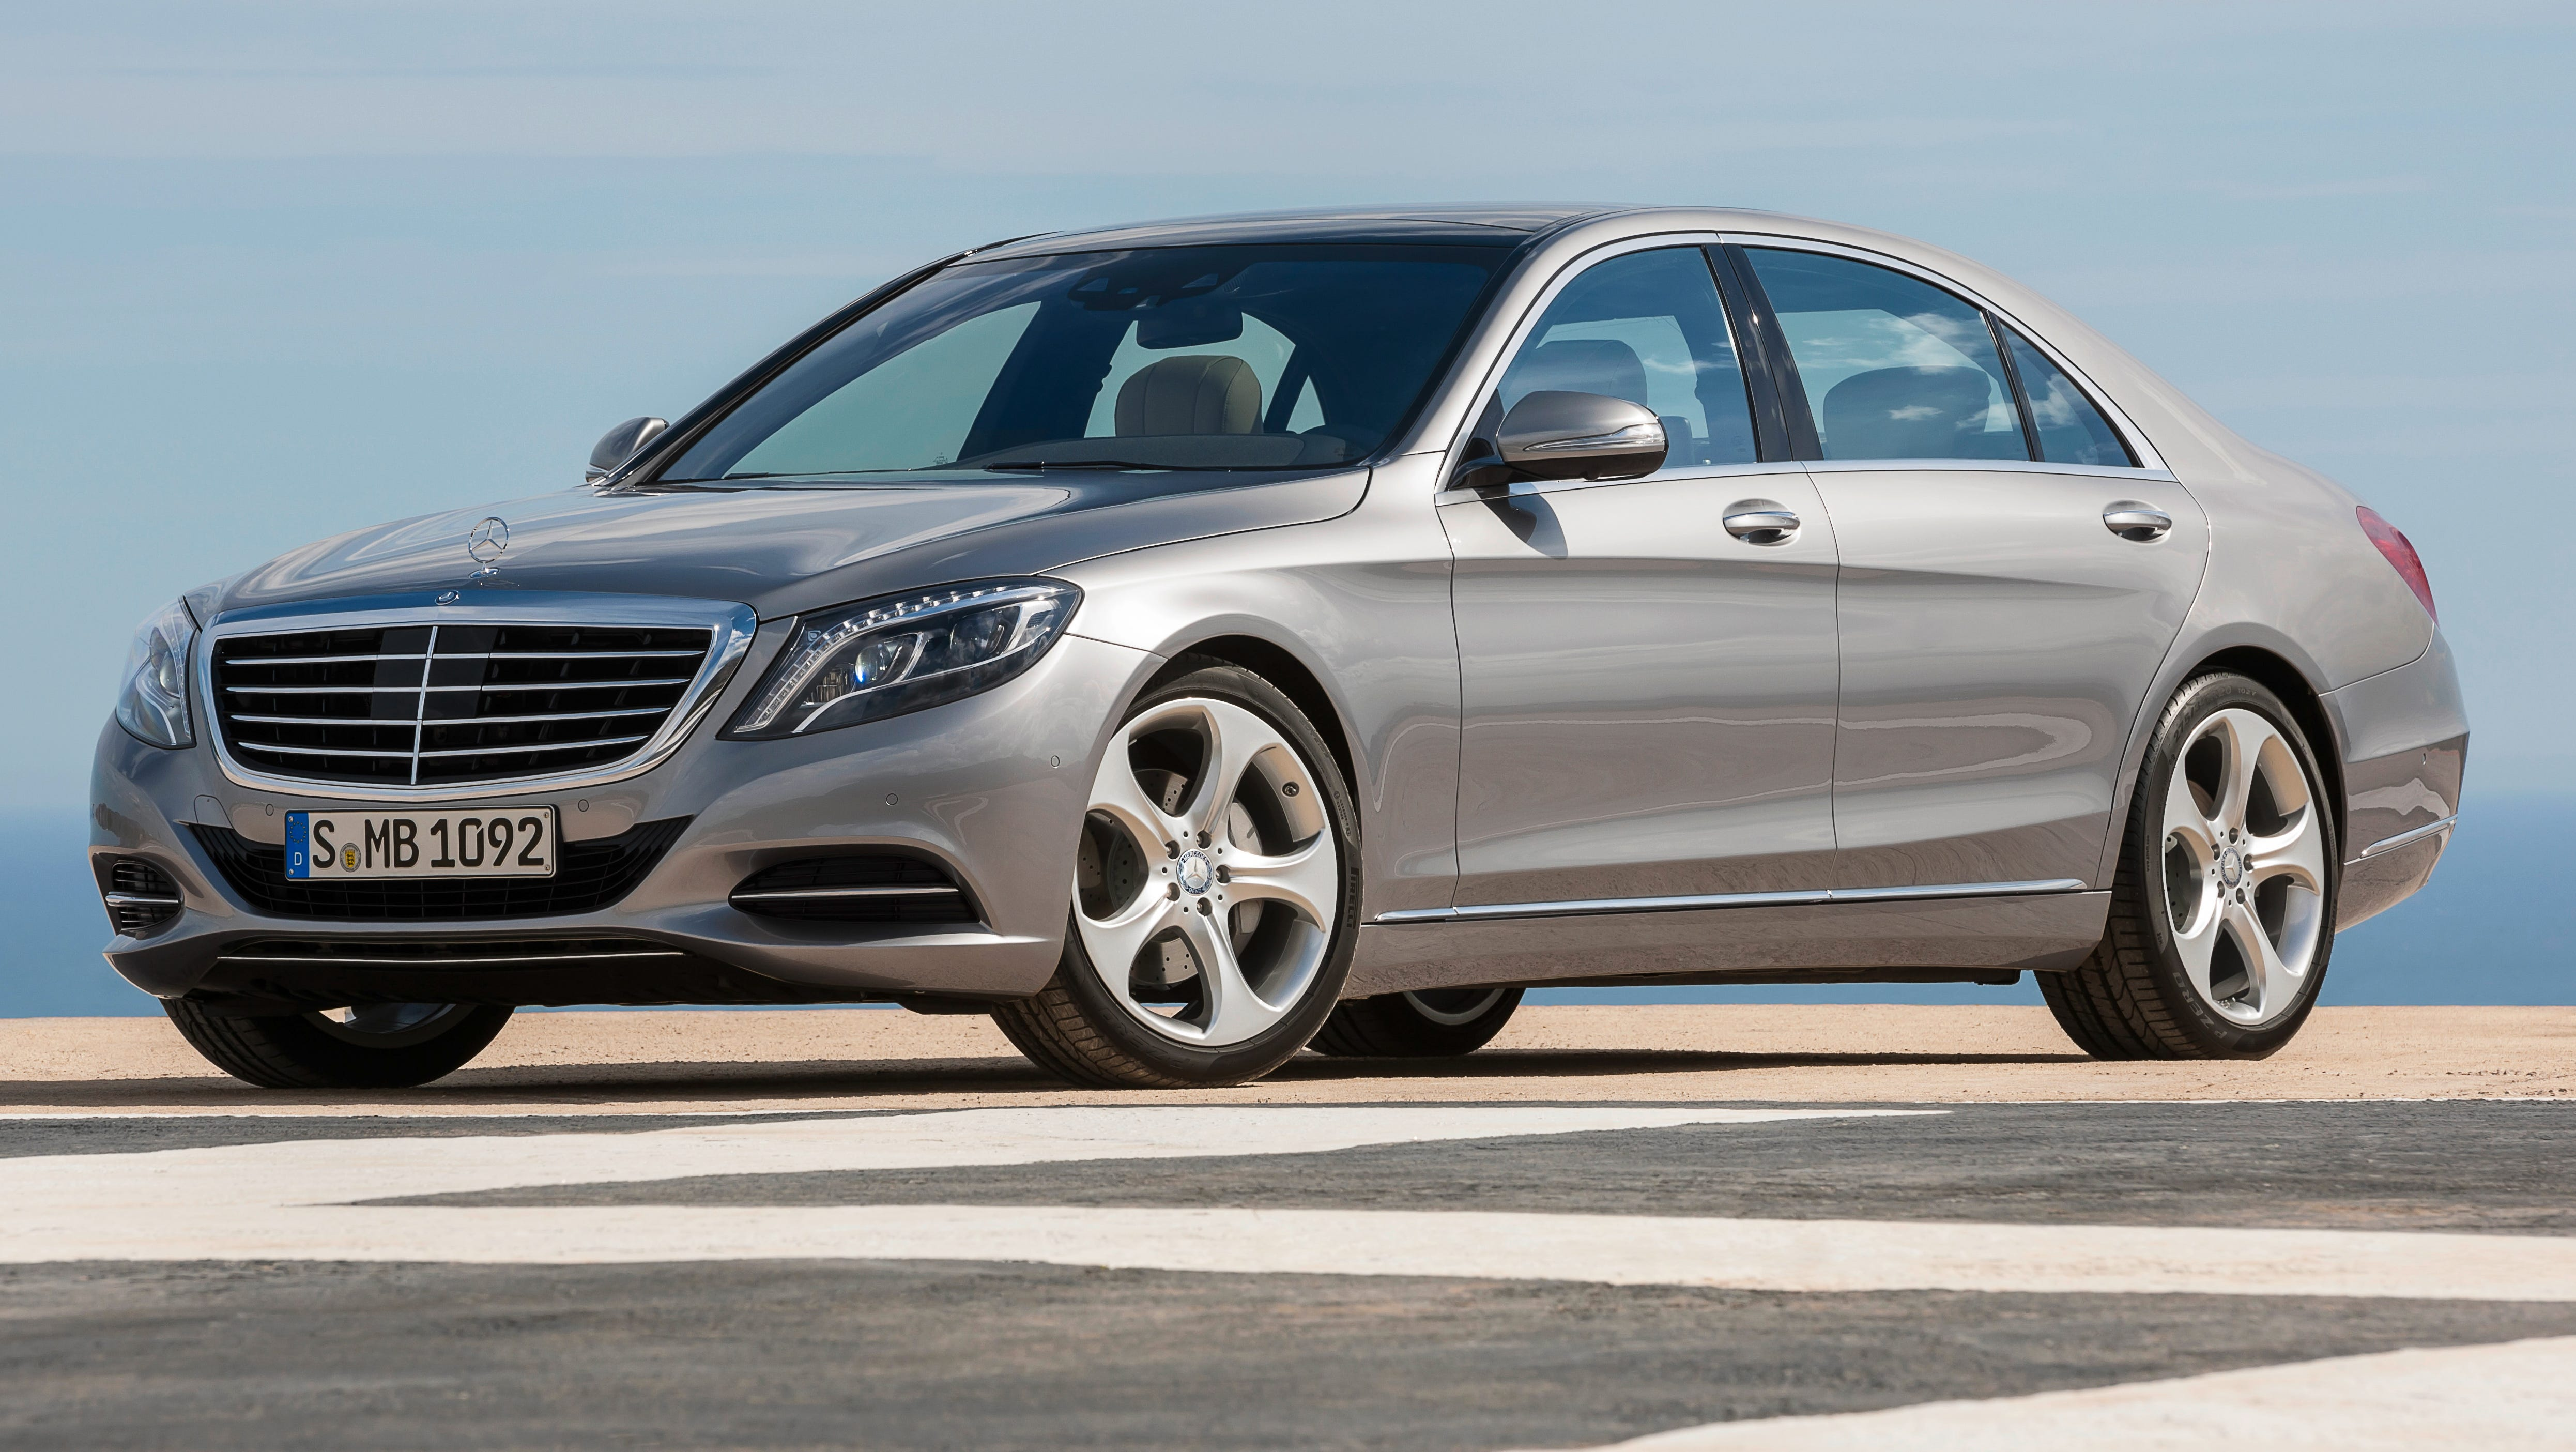 This year's Edmunds.com Top 10 Best Cars for Short Drivers includes the Mercedes-Benz S-class, the most expensive car on the list, starting at $93,255 (2014 model shown here).